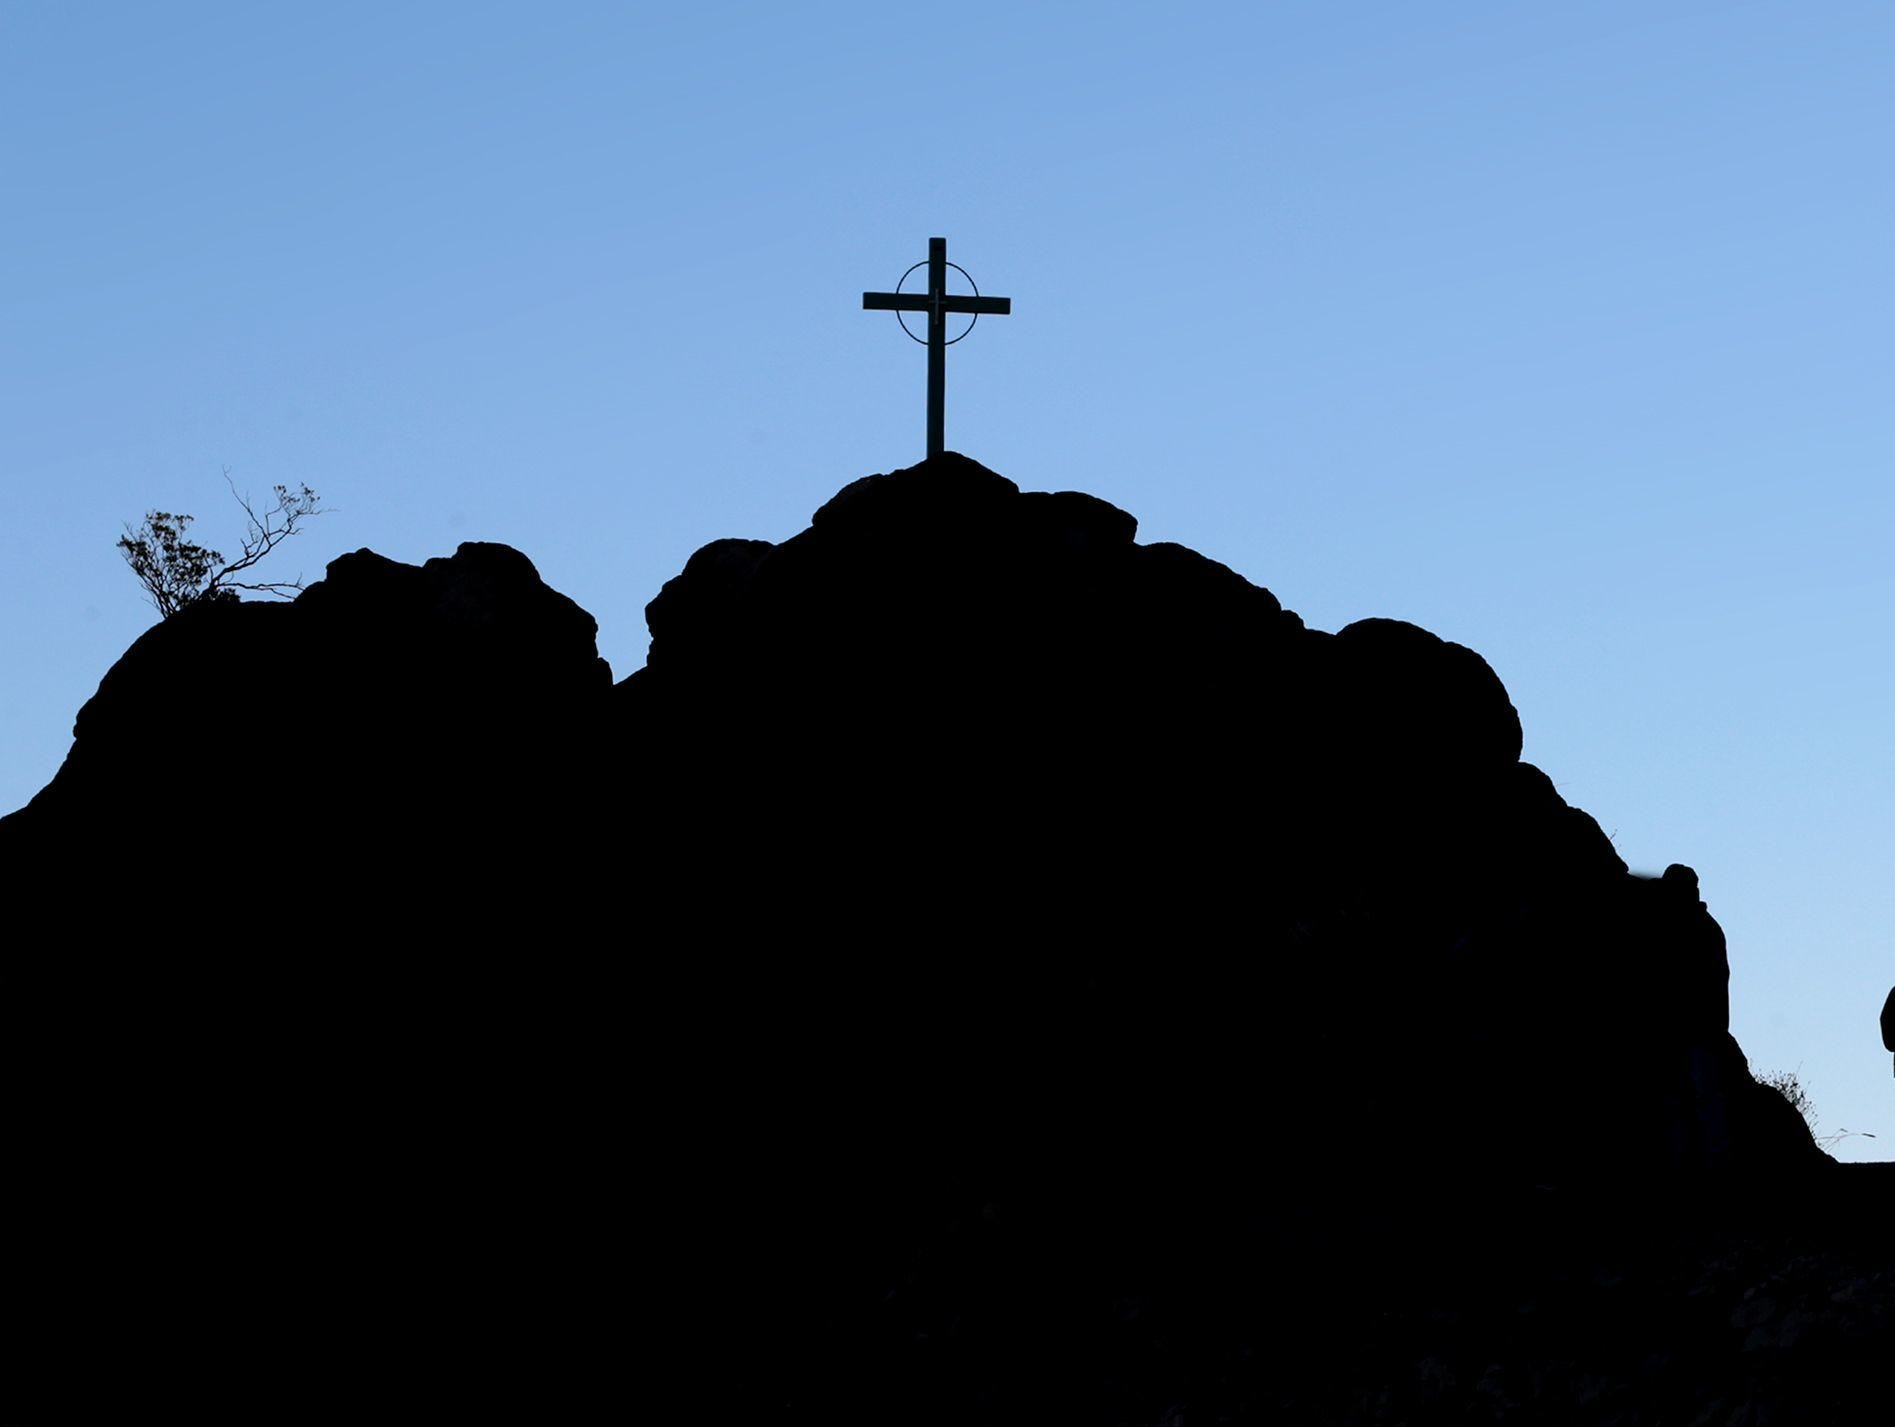 Photos by Mark Lambie/El Paso Times Thousands of Catholic faithful made the 5-mile pilgrimage to Mount Cristo Rey Sunday. The hike coincides with the completion of the monument and celebrates the Christian Feast of Christ the King.